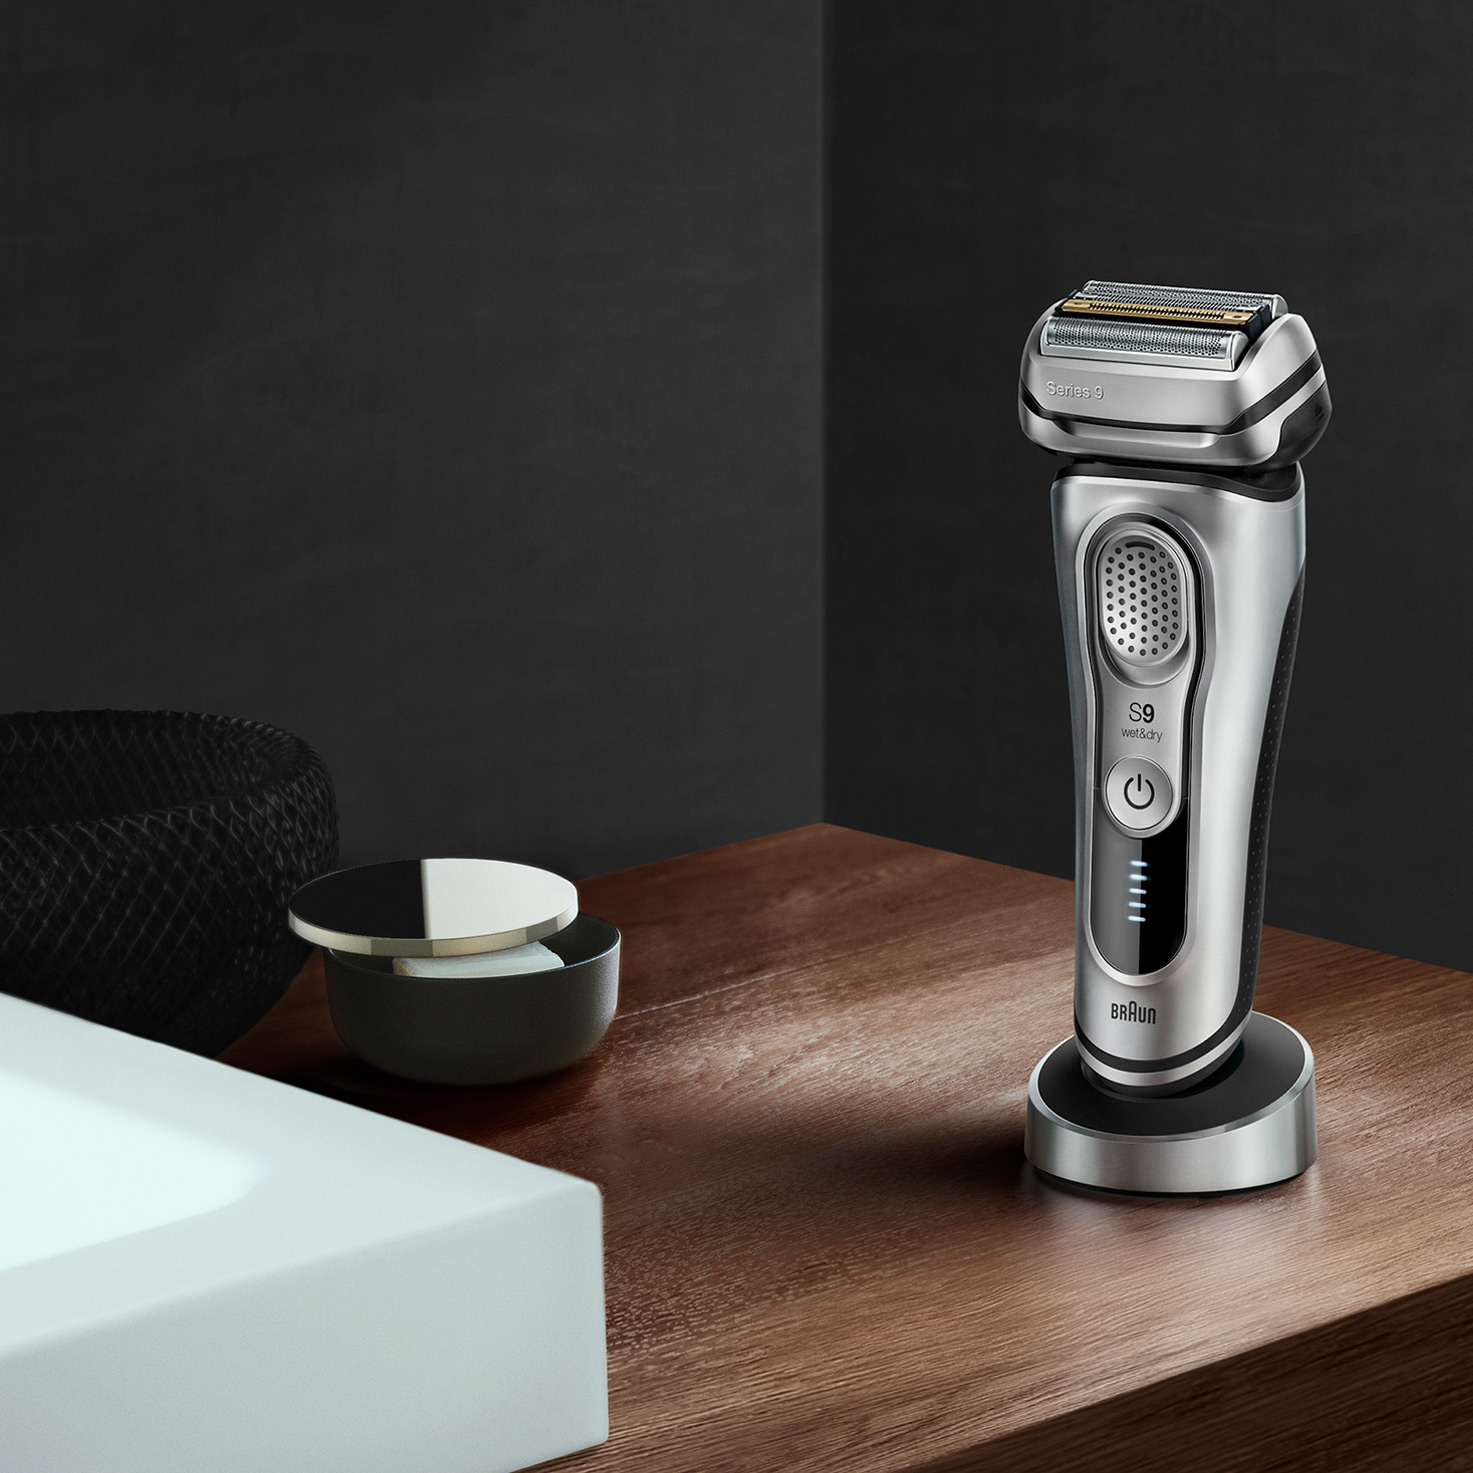 Series 9 9330s shaver in charging stand